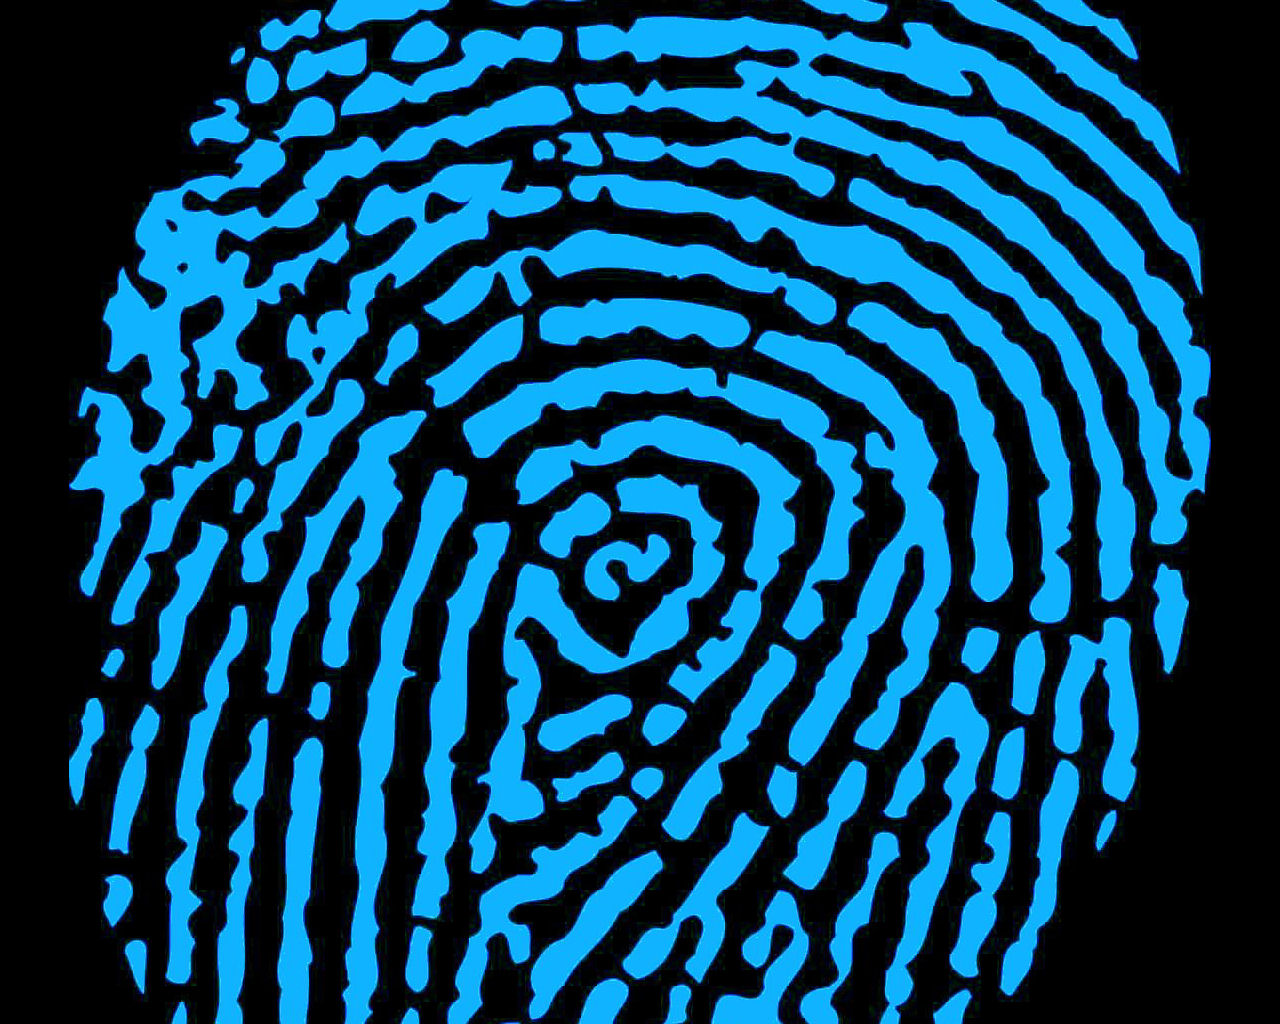 Fingerabdruck-Fingerprint-DNA